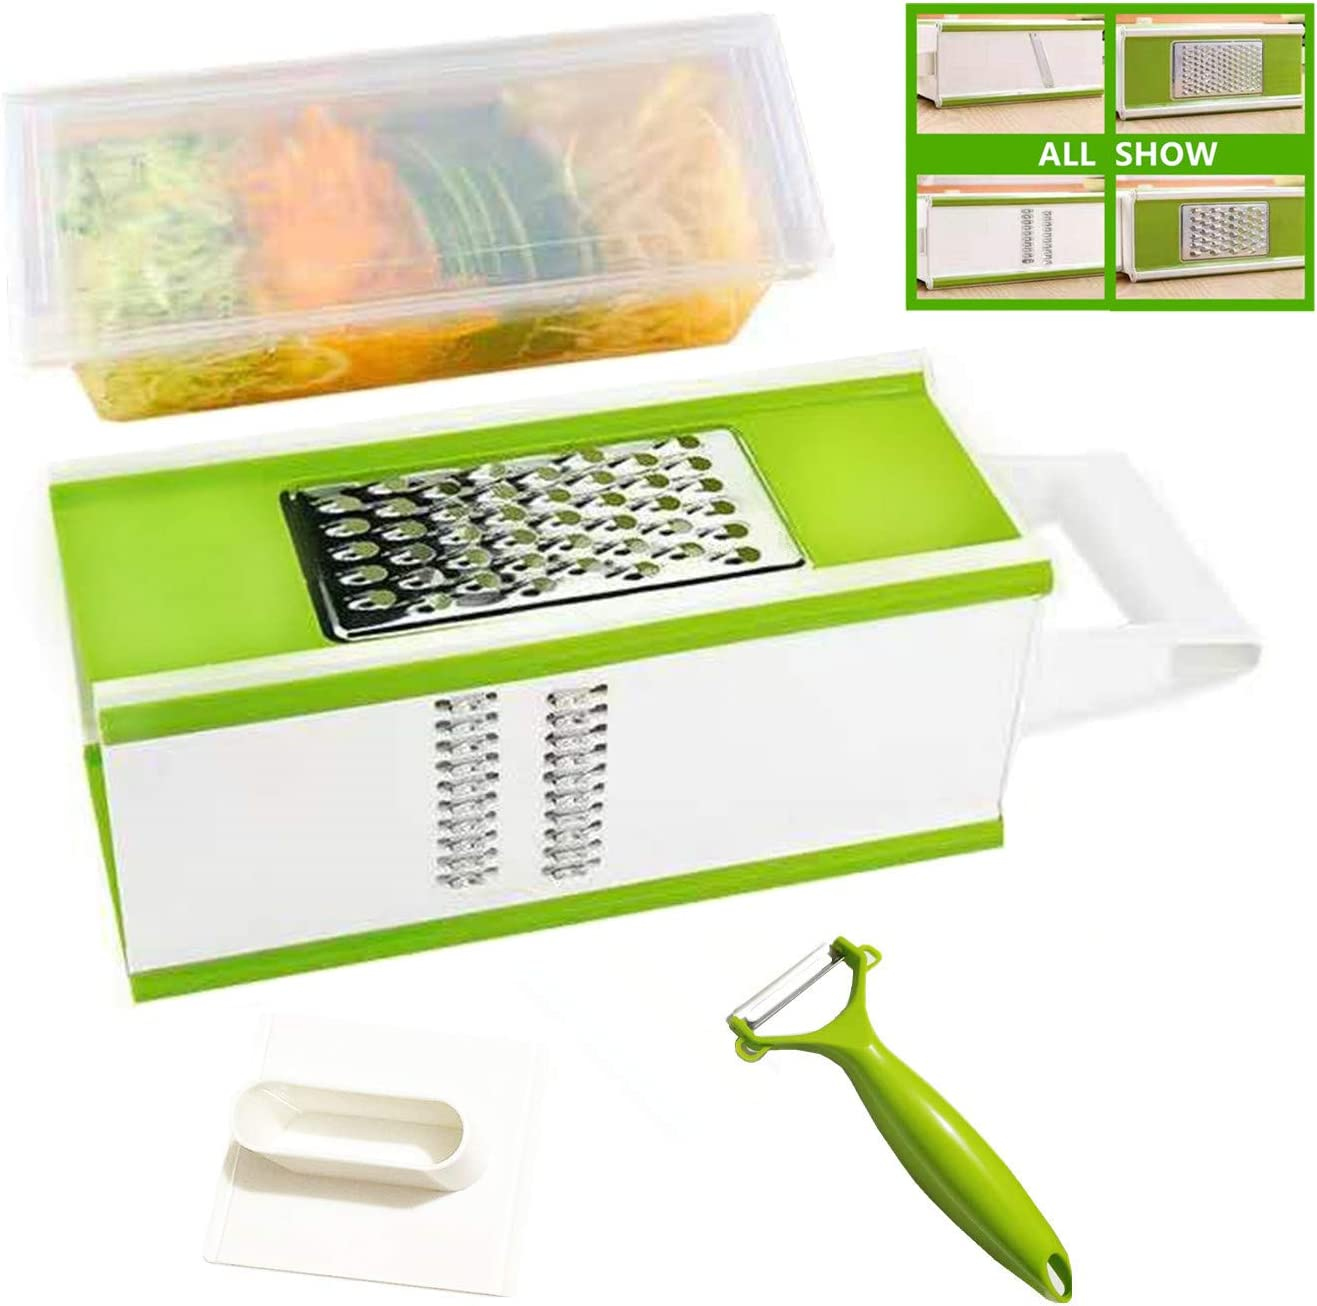 Multifunctional 4-Side Grater with Storage Box for Kitchen,Cheese Grater with Container,Box Slicer with Hand Chopper for Cheese Onion Tomato Patato